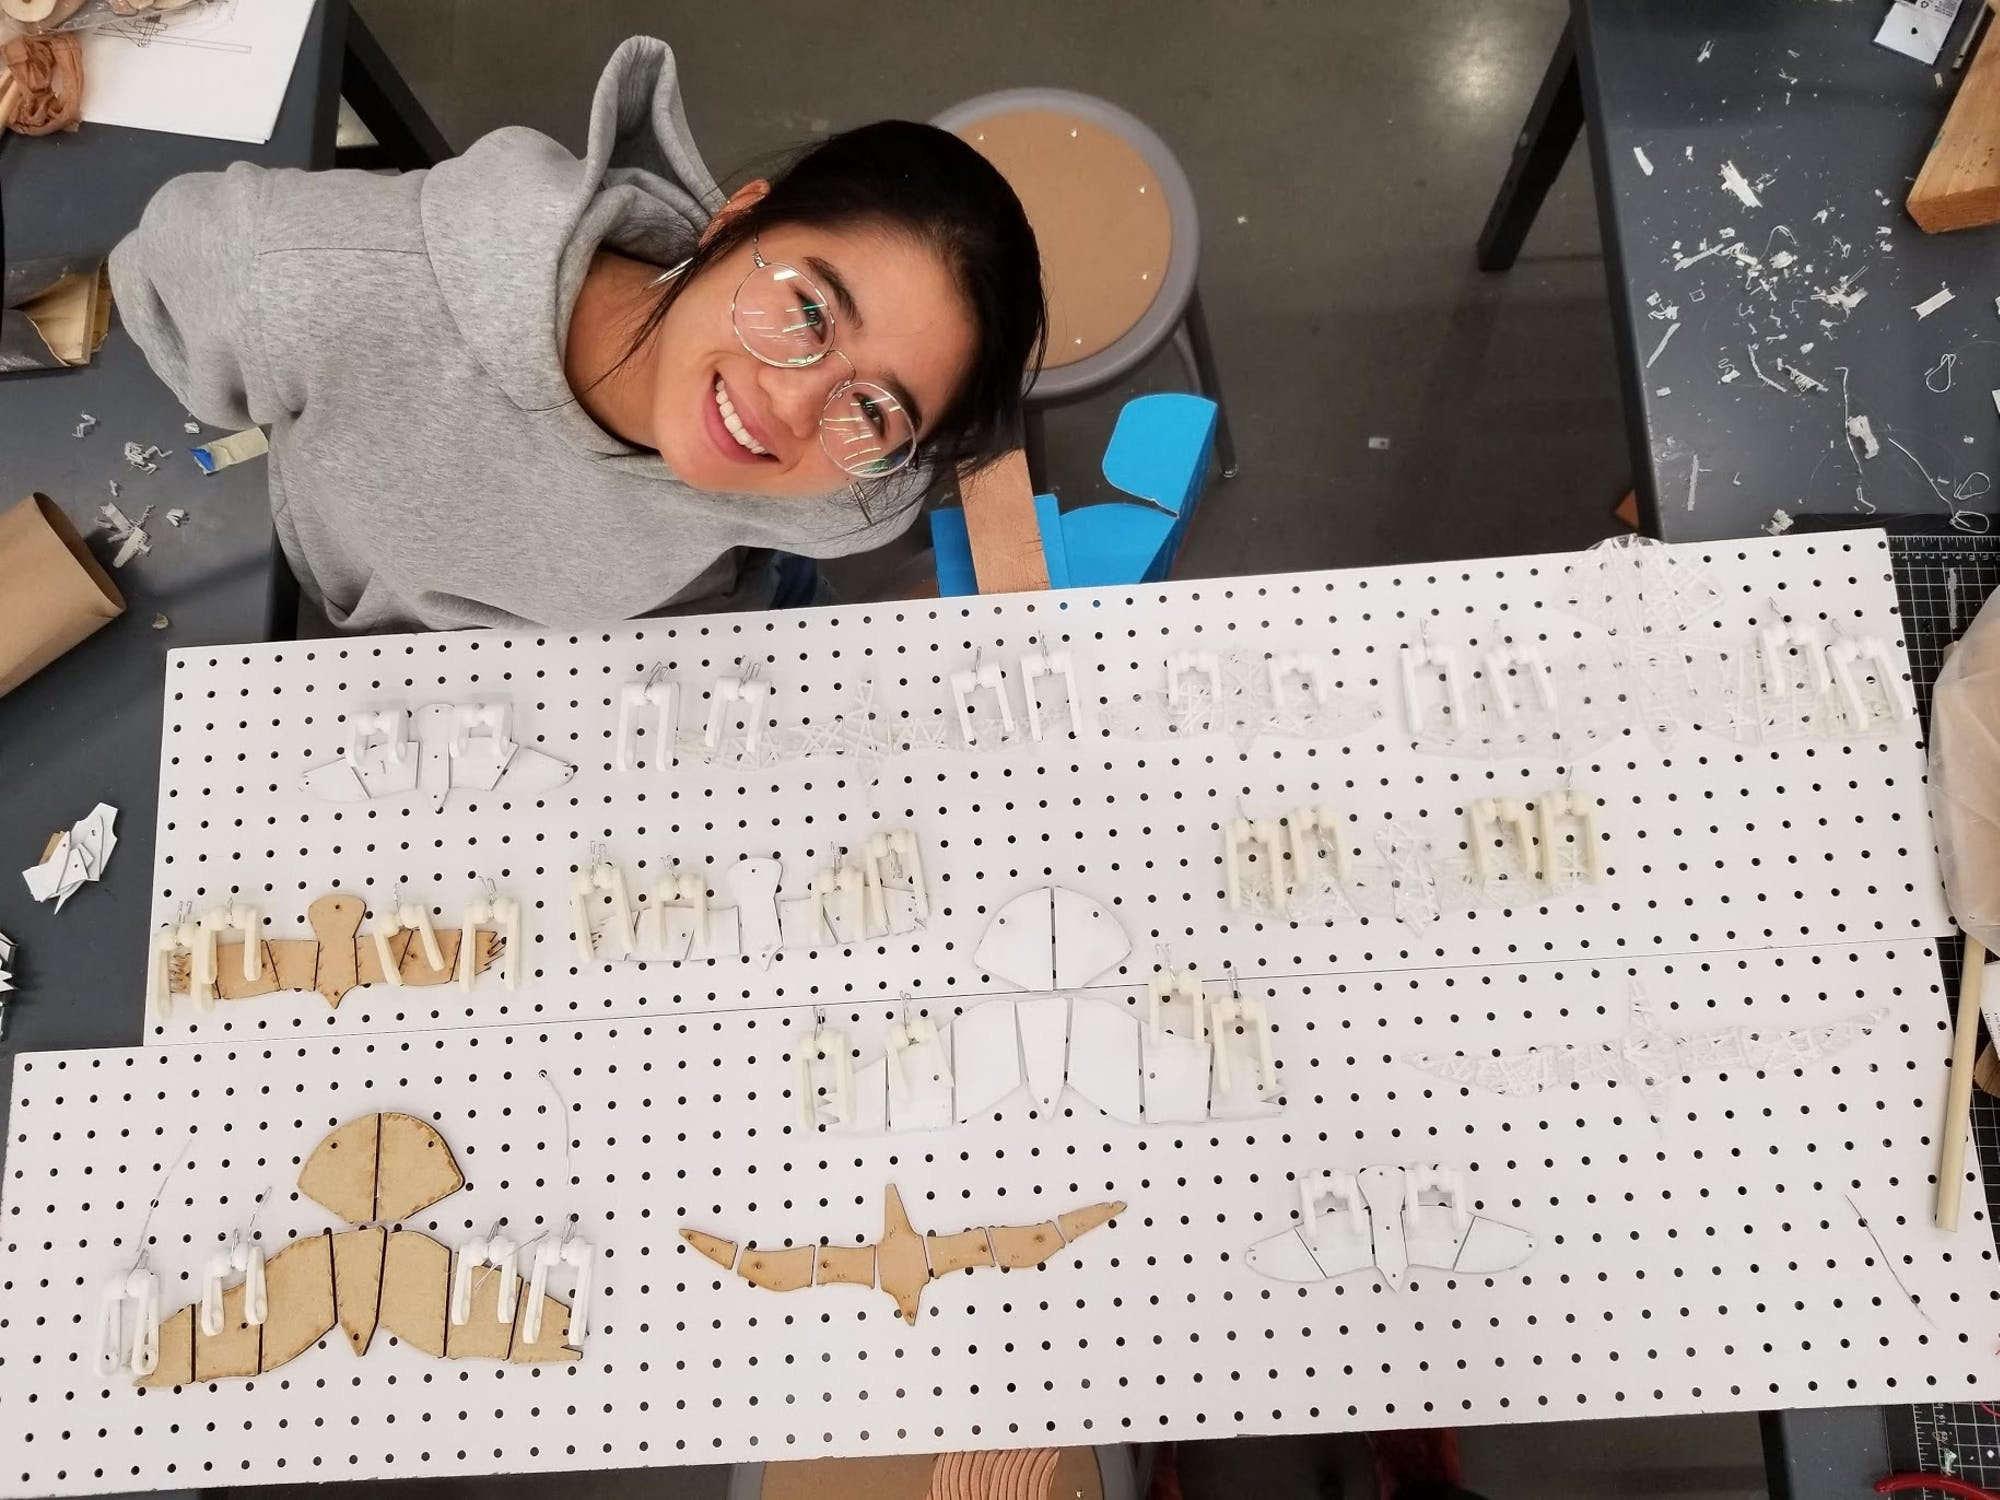 A young woman smiles up at a camera next to woodworking parts attached to a pinboard